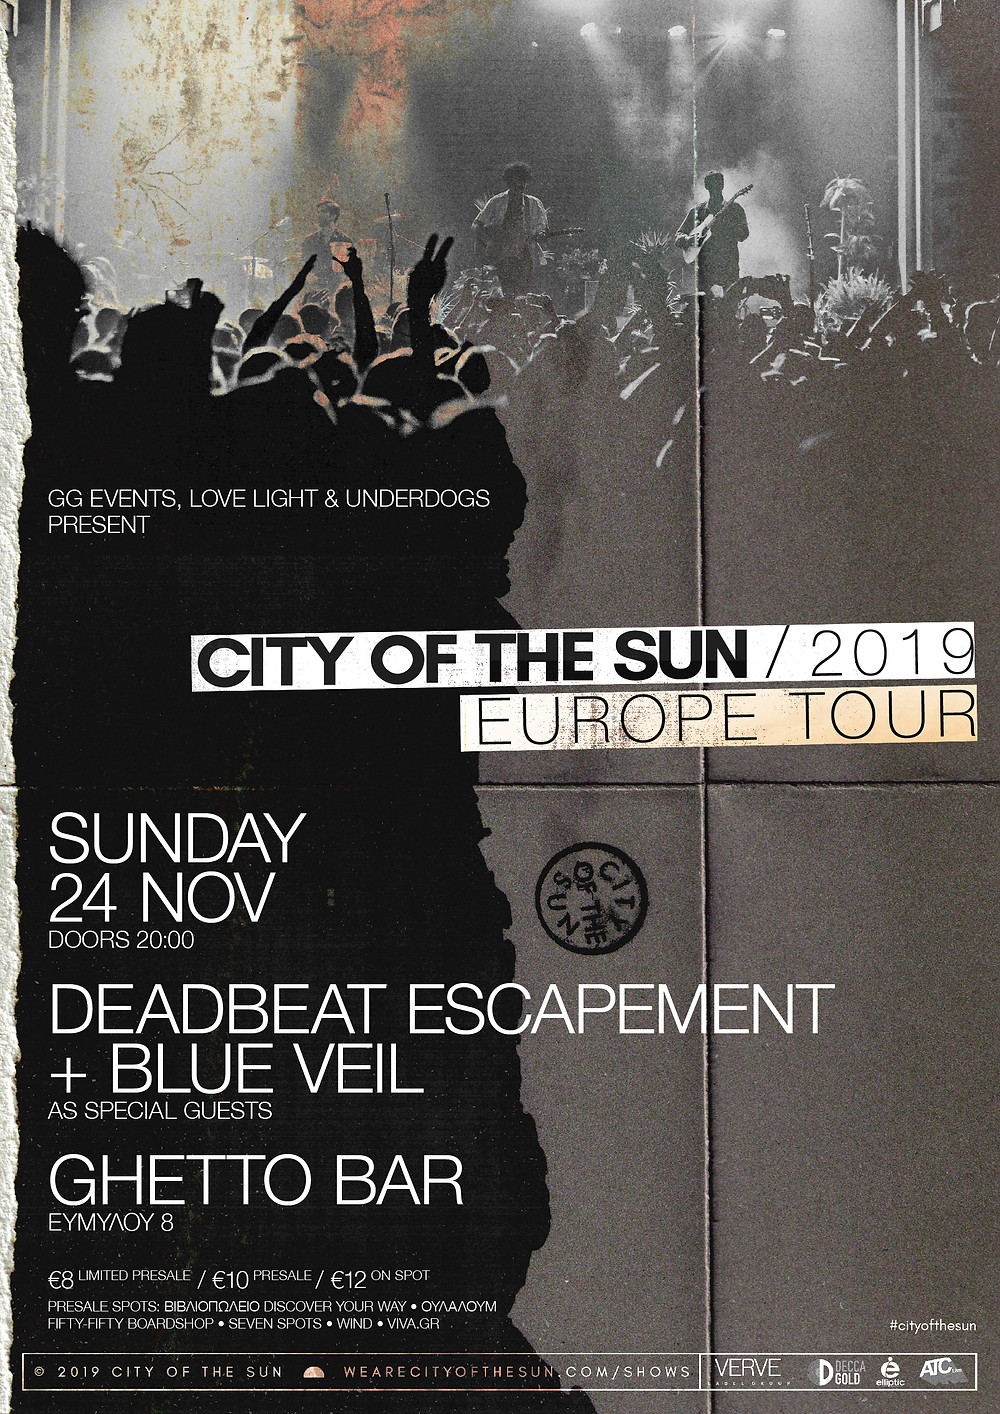 City of the Sun wave 97.4